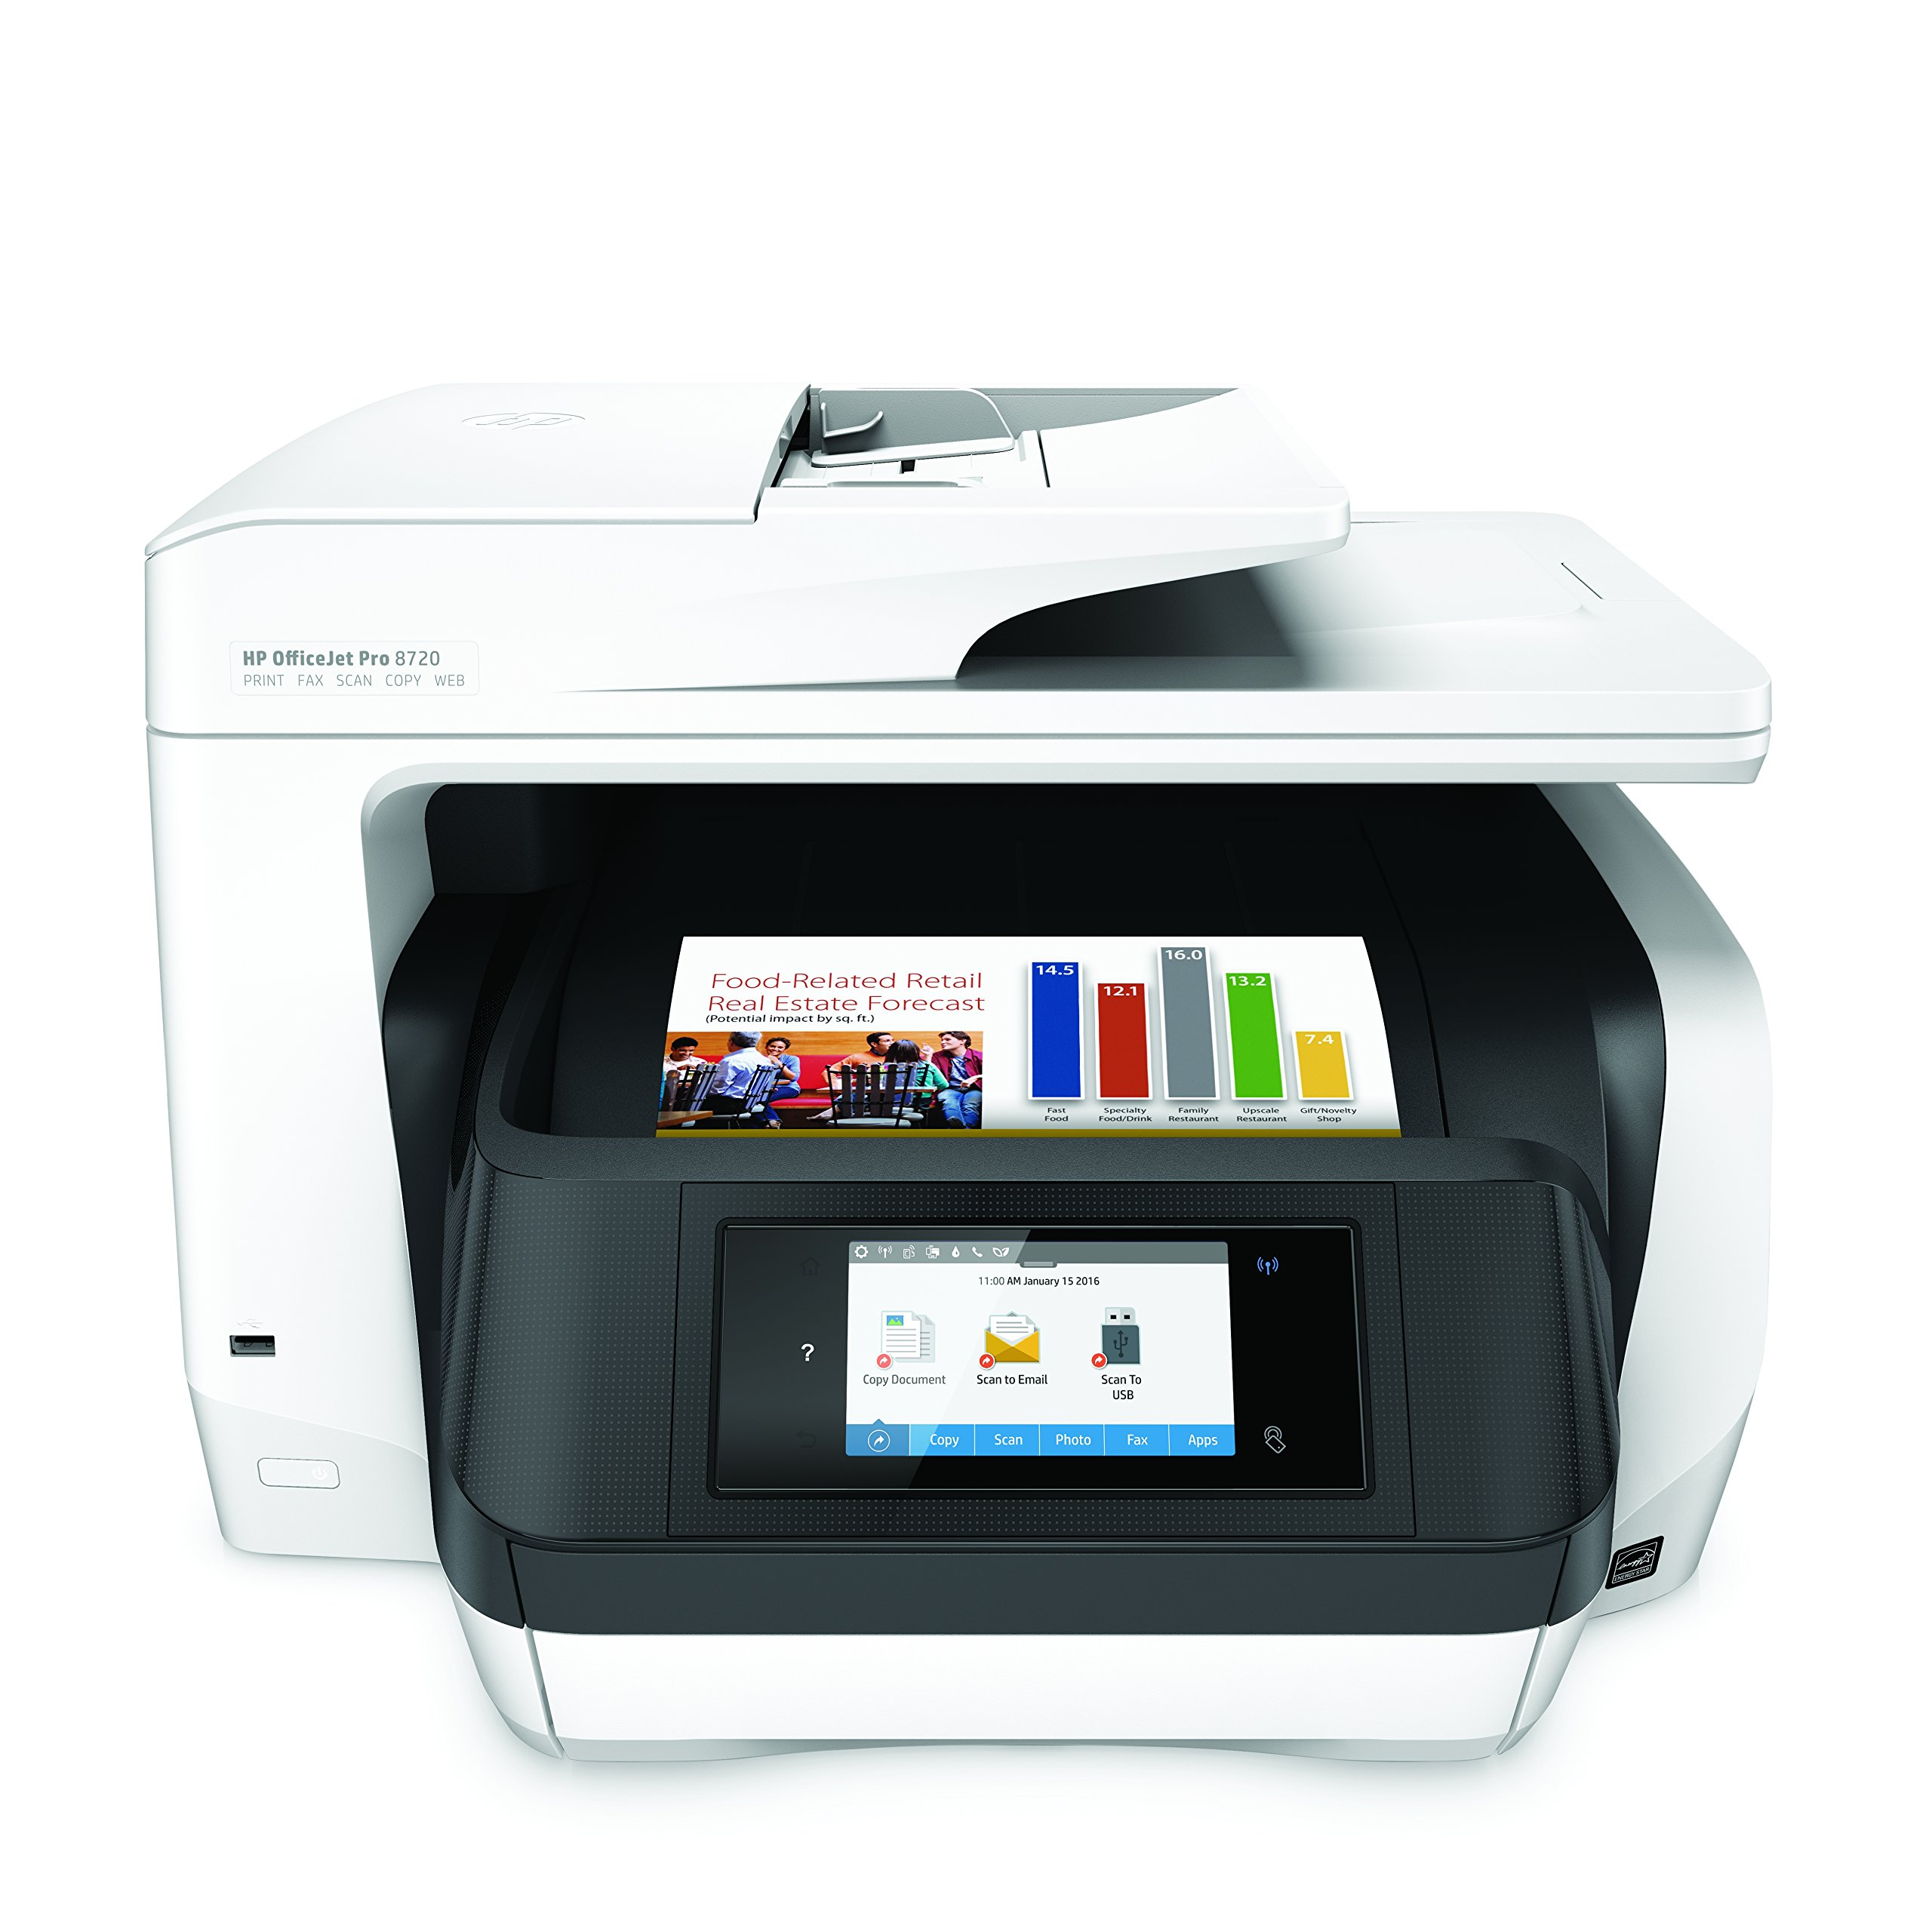 HP OfficeJet Pro 8720 All-in-One Wireless Printer with Mobile Printing, Instant Ink ready - White (M9L75A) by HP